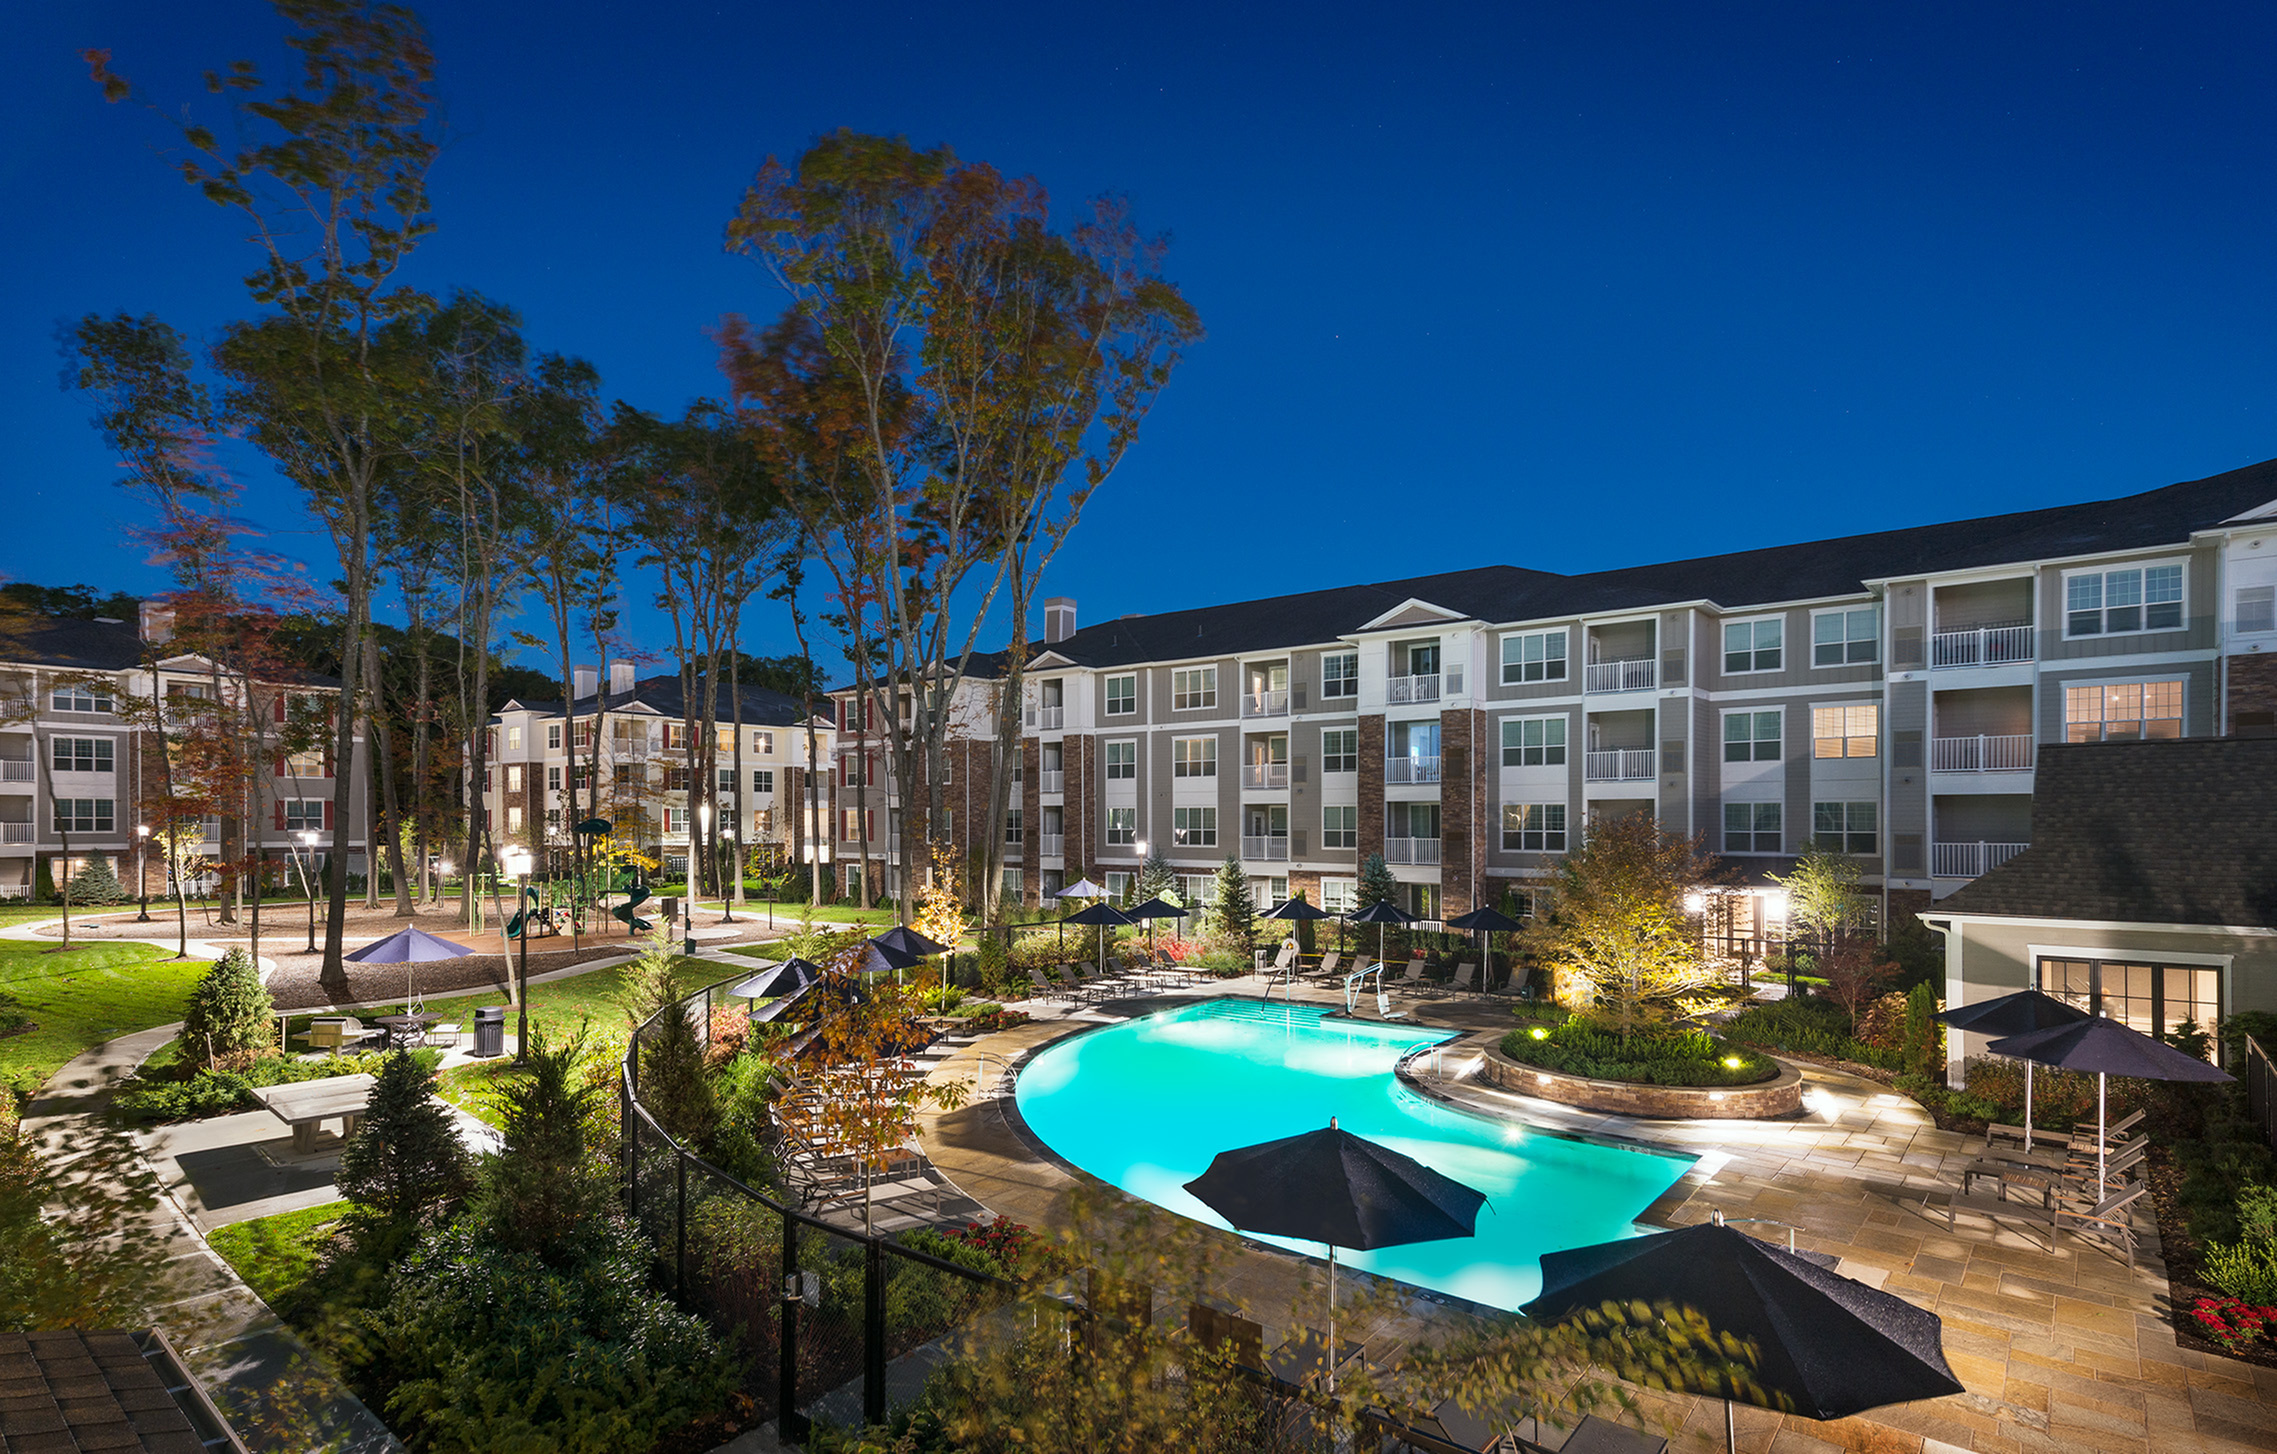 Image of Lavish courtyard with resort-style pool and conversational fire-pit for Hanover at Andover